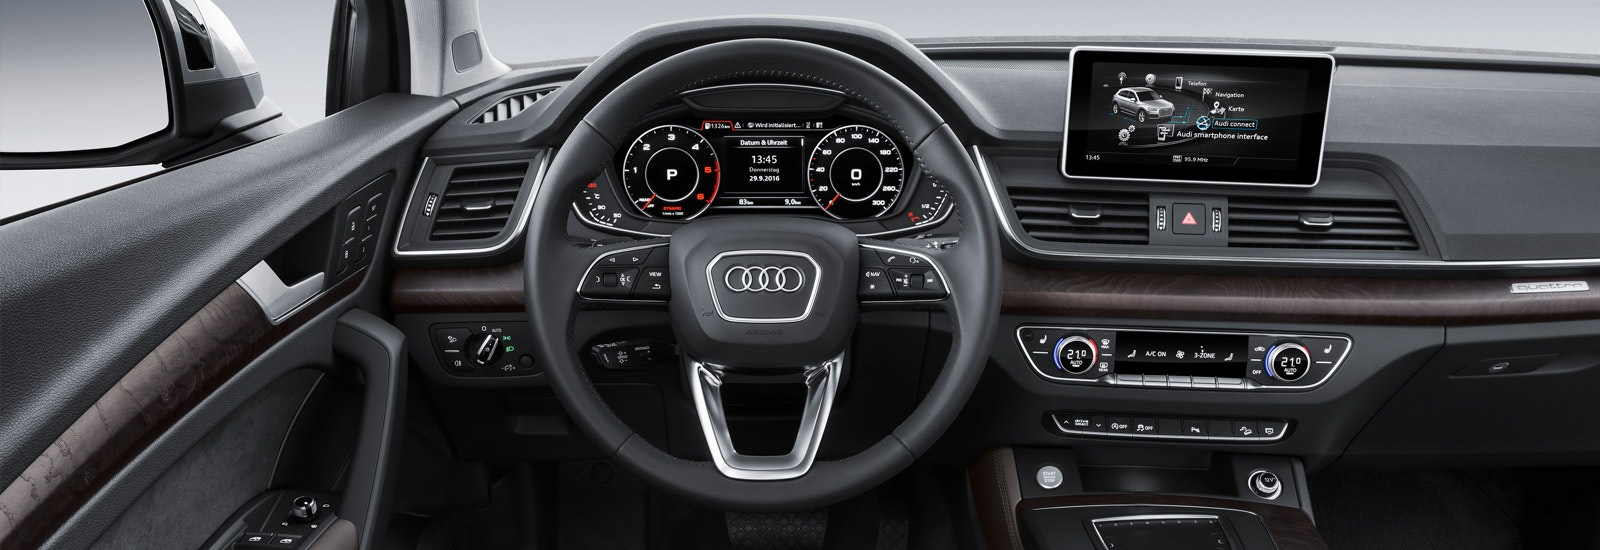 2018 Audi Q3 price, specs and release date | carwow